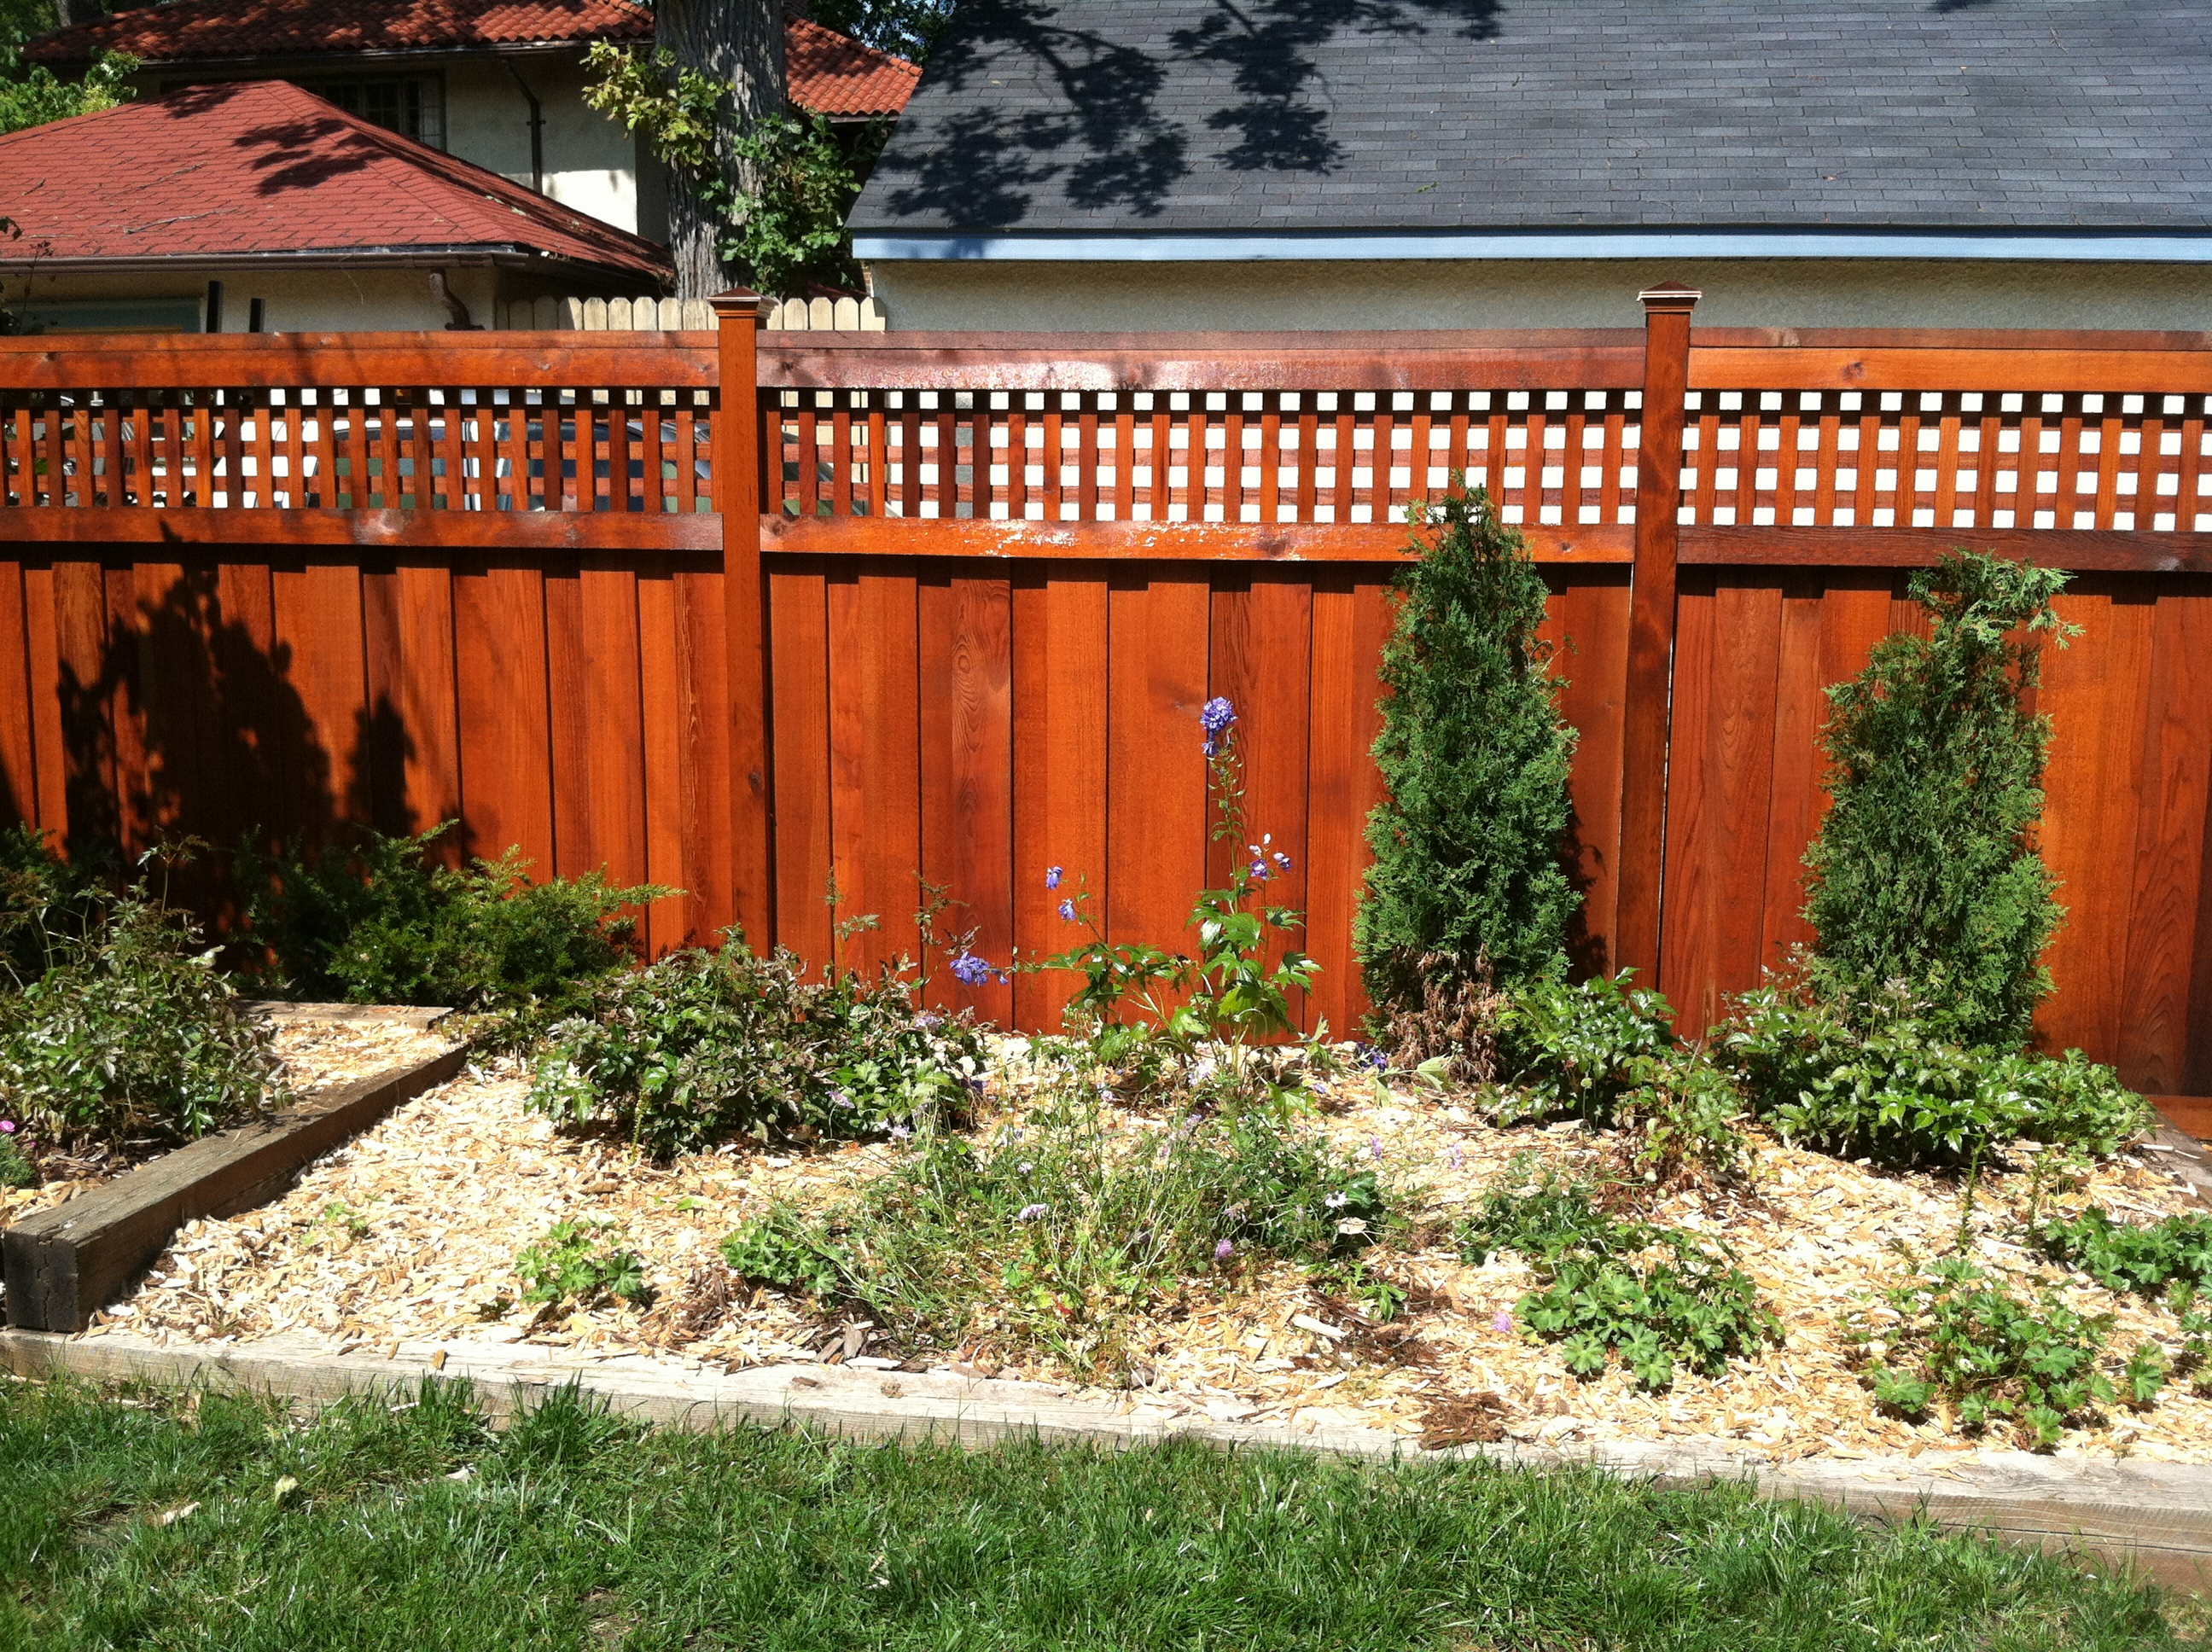 Best stain for wood fence - Cedartone Fence Stain Wood Fence Staining